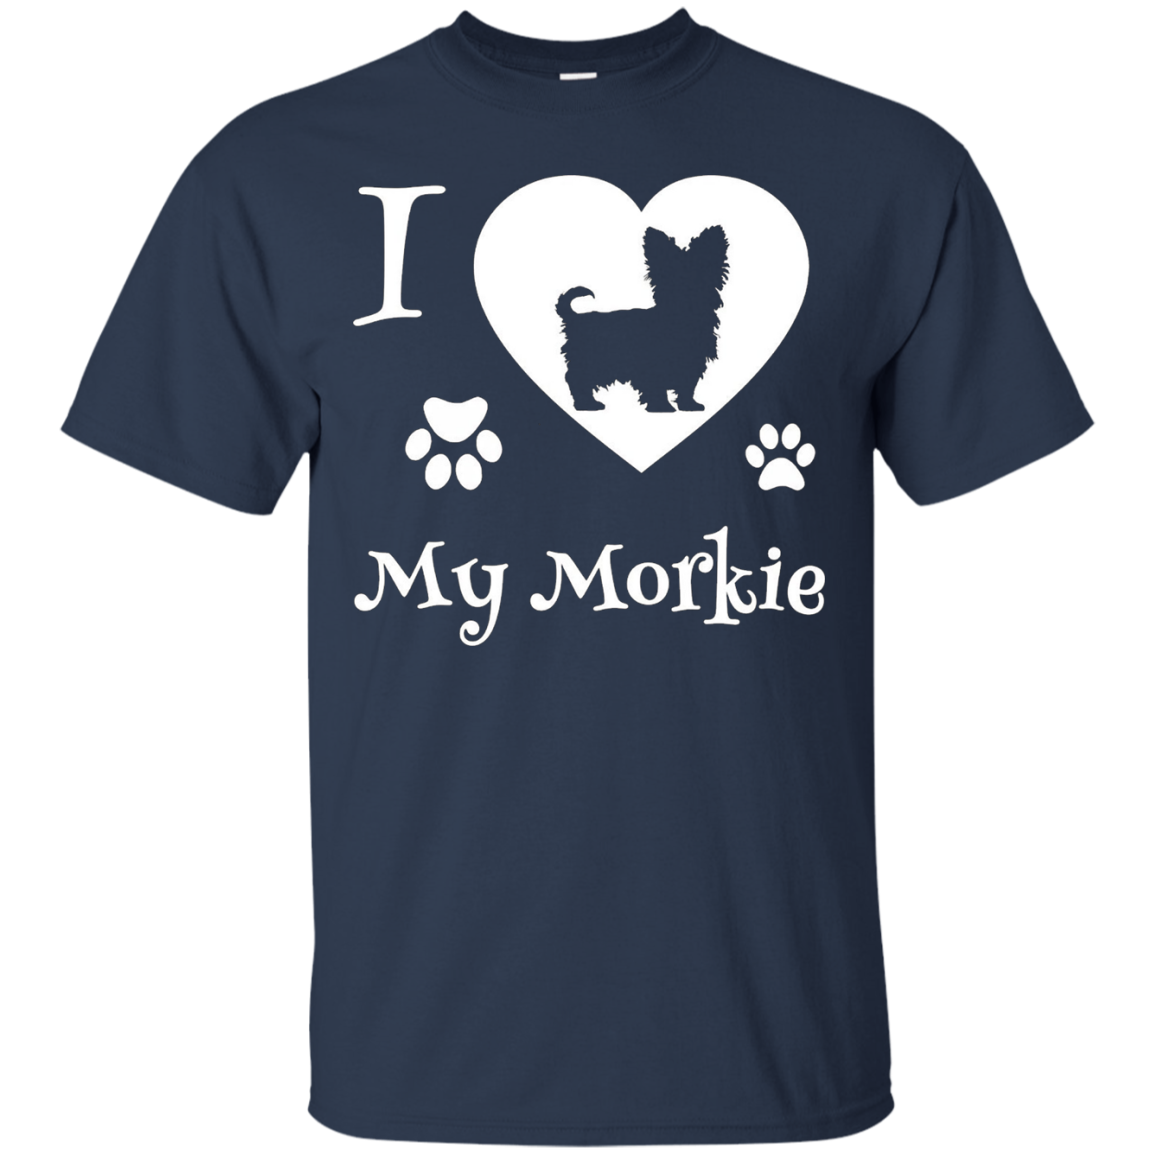 I LOVE MY MORKIE is a Yorkshire Terrier Maltese Dog T-shirt